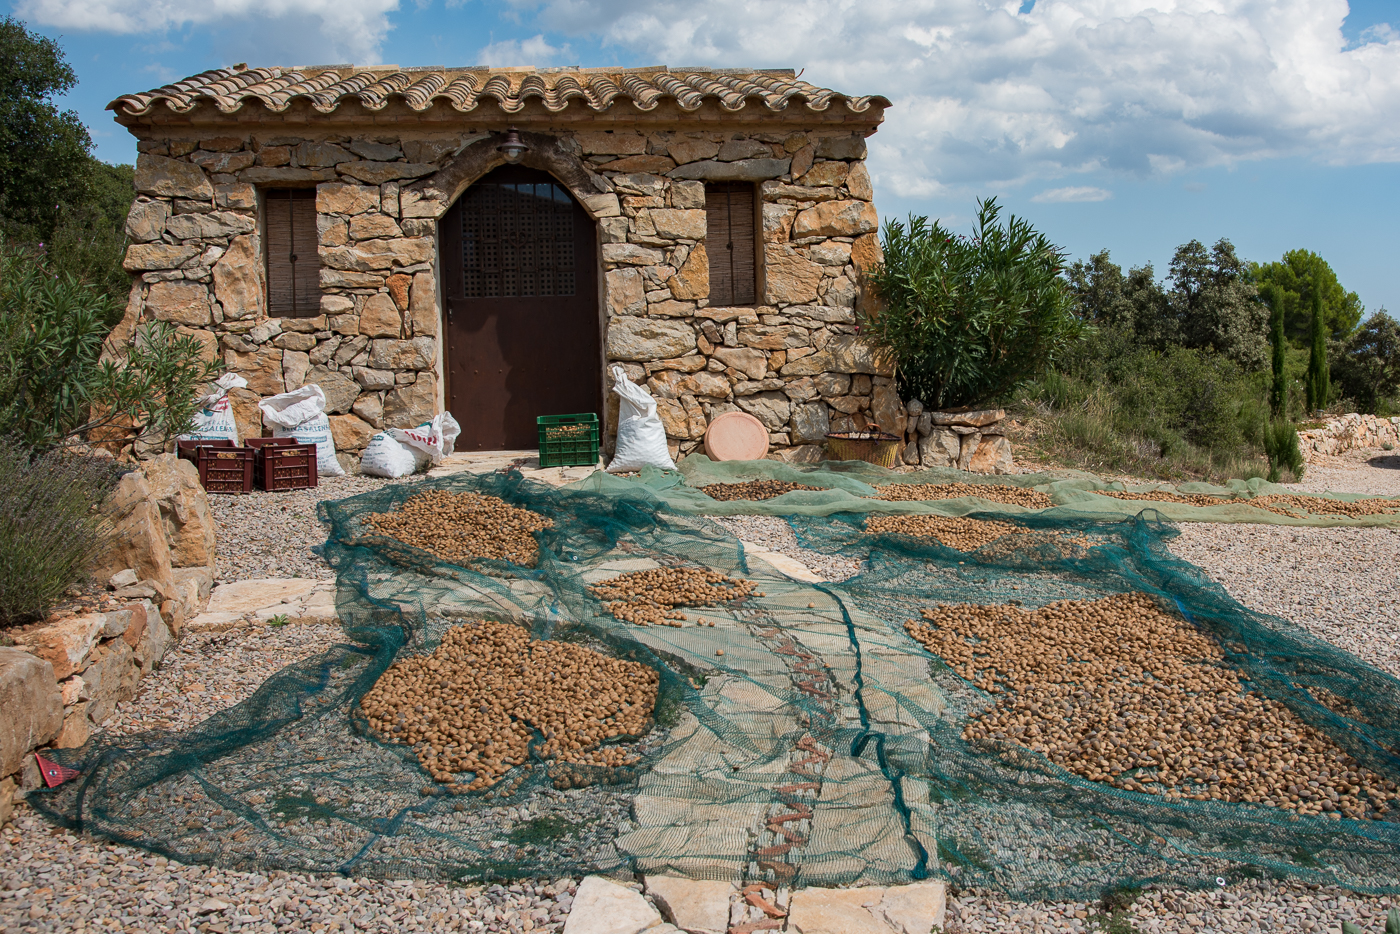 Laying the almonds out to dry seemed a good idea at the time...until it rained